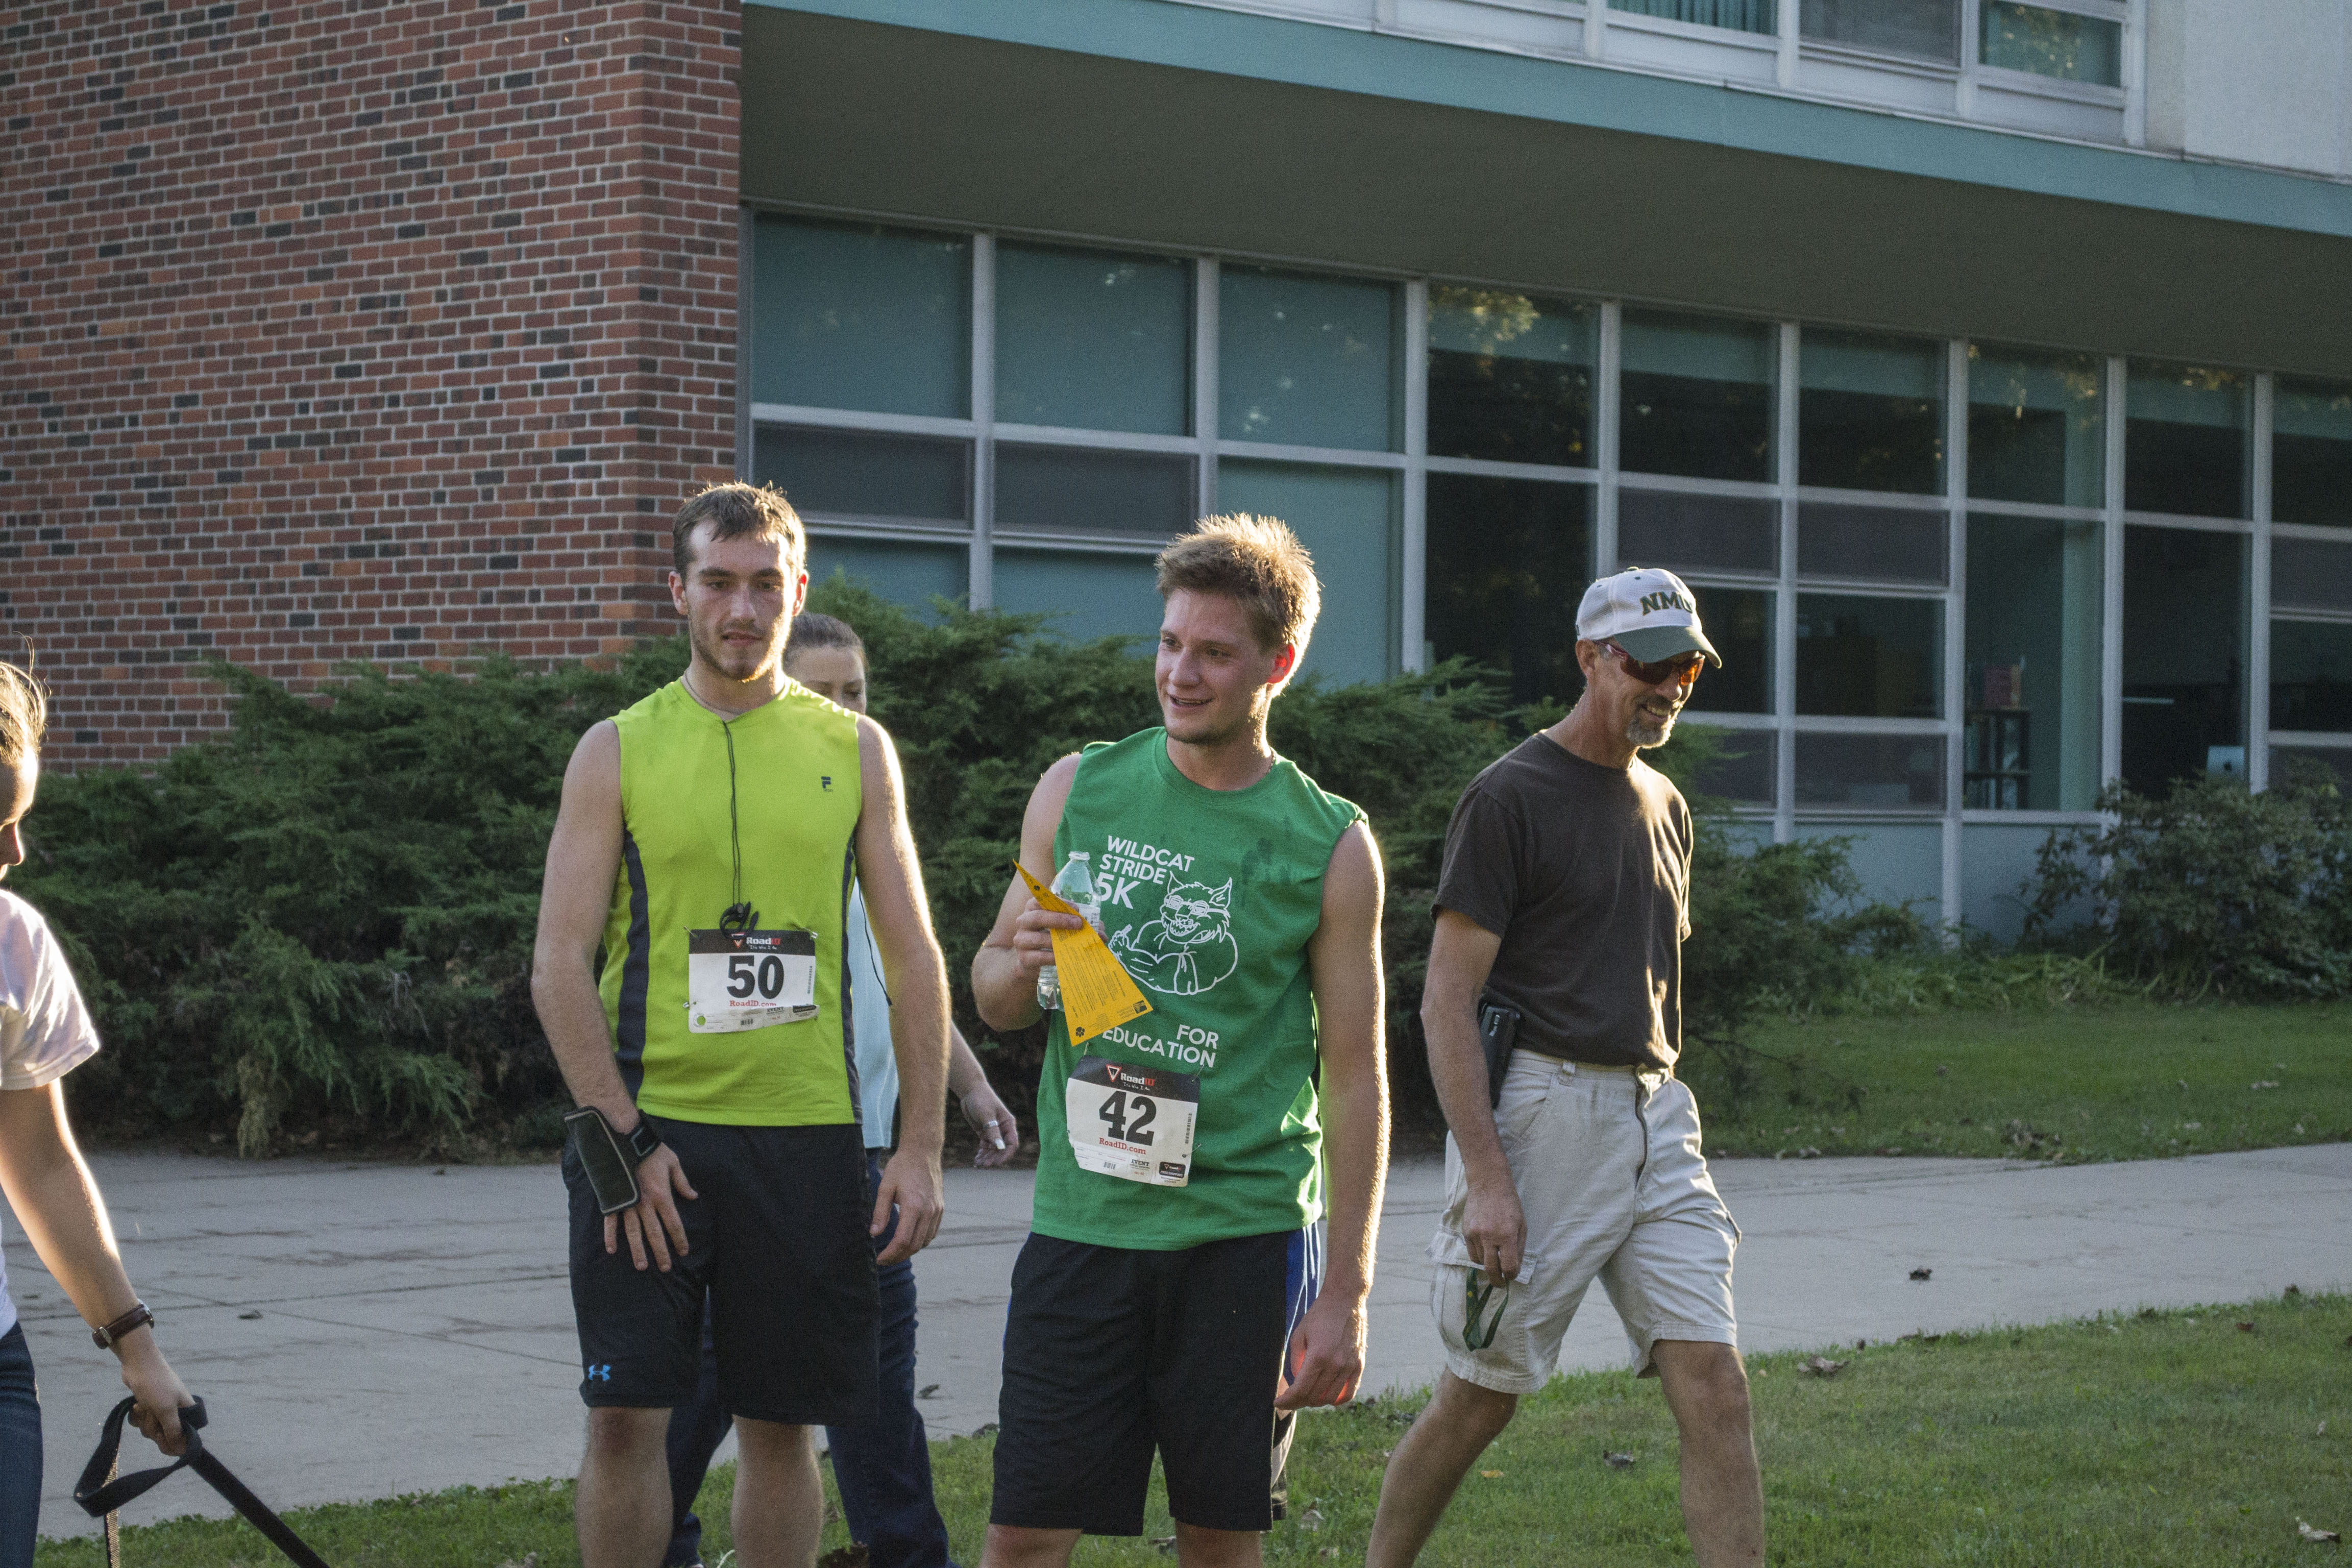 One of the first runners back from the 5K this satruday at NMU with Phi Sigma Sigma